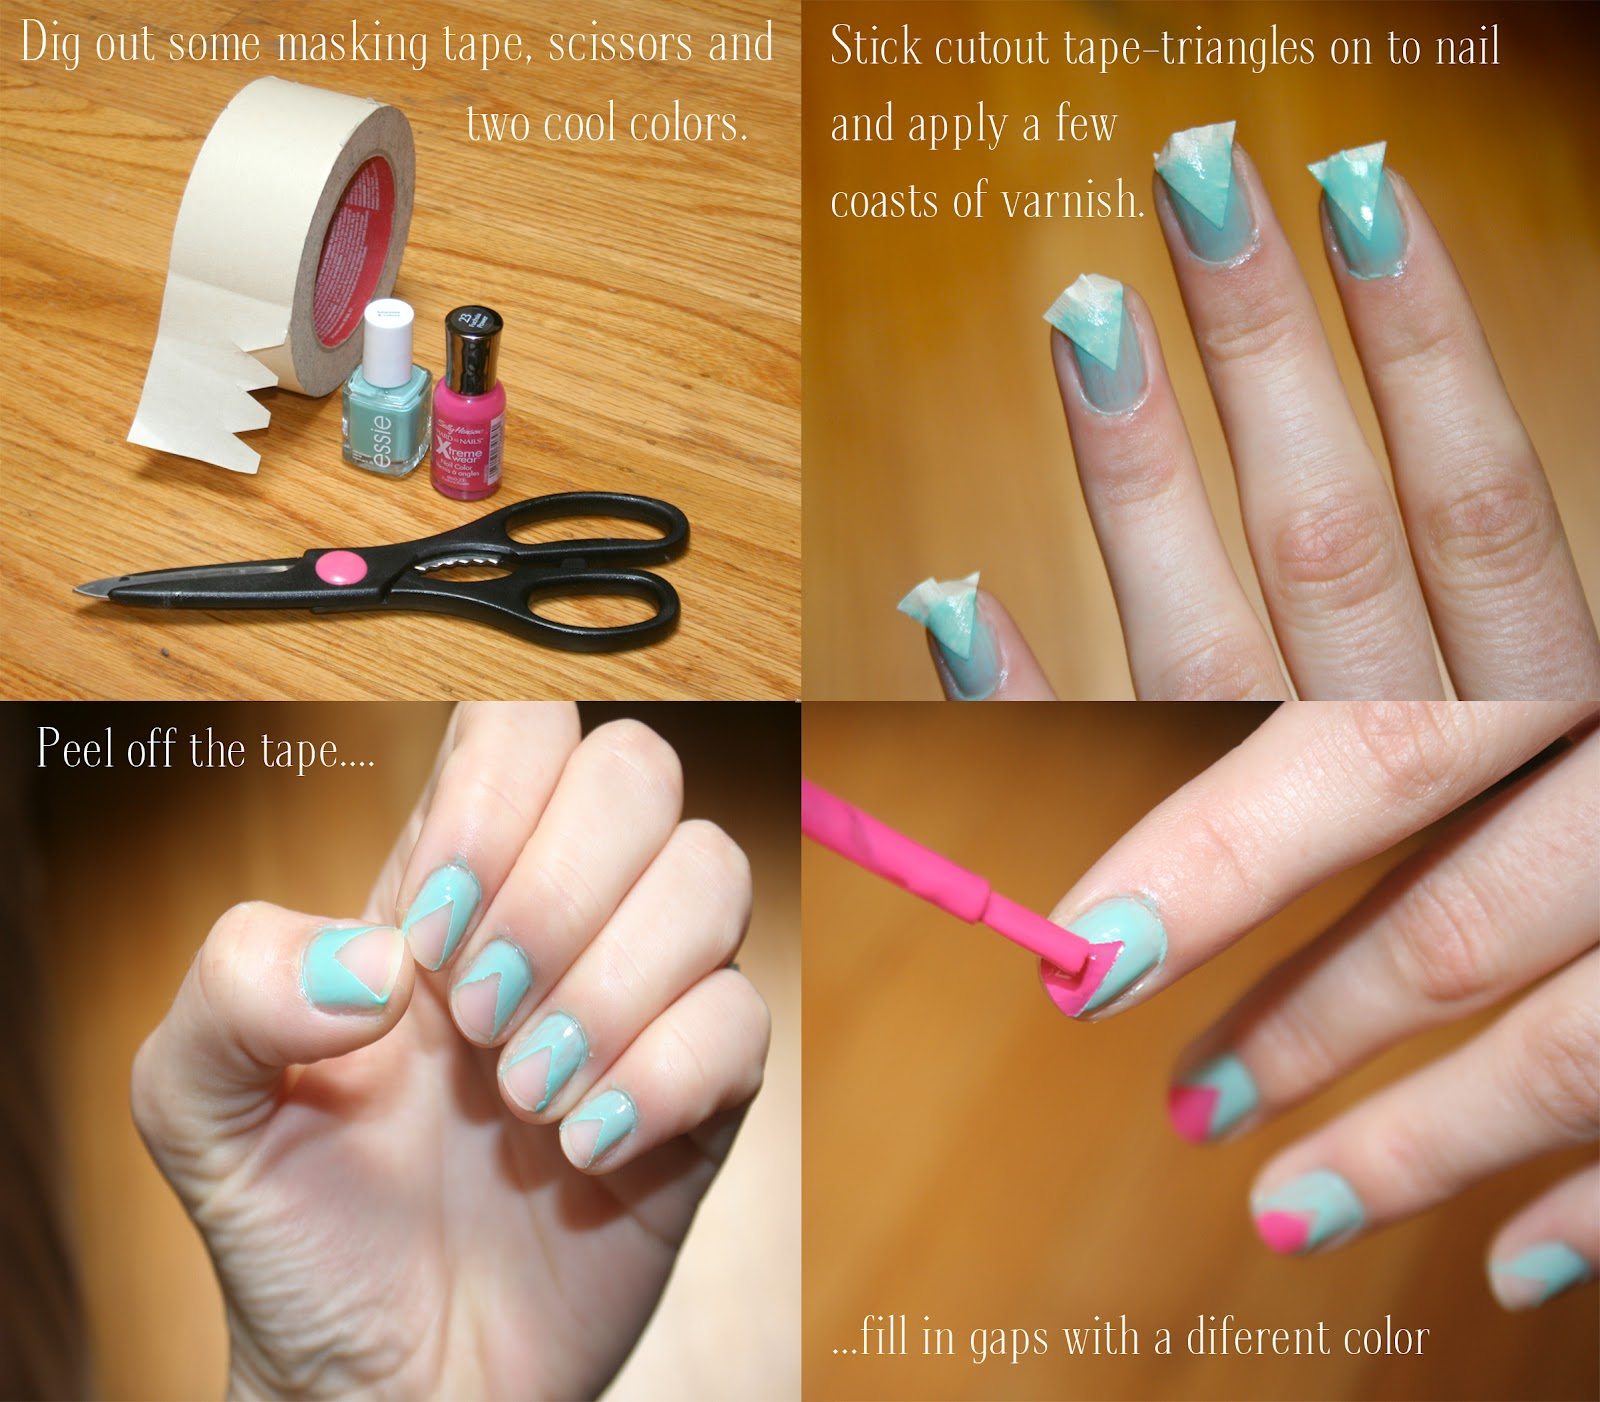 Nail art with scotch tape tutorial best nails 2018 14 nail tutorials with tape tricks pretty designs prinsesfo Gallery